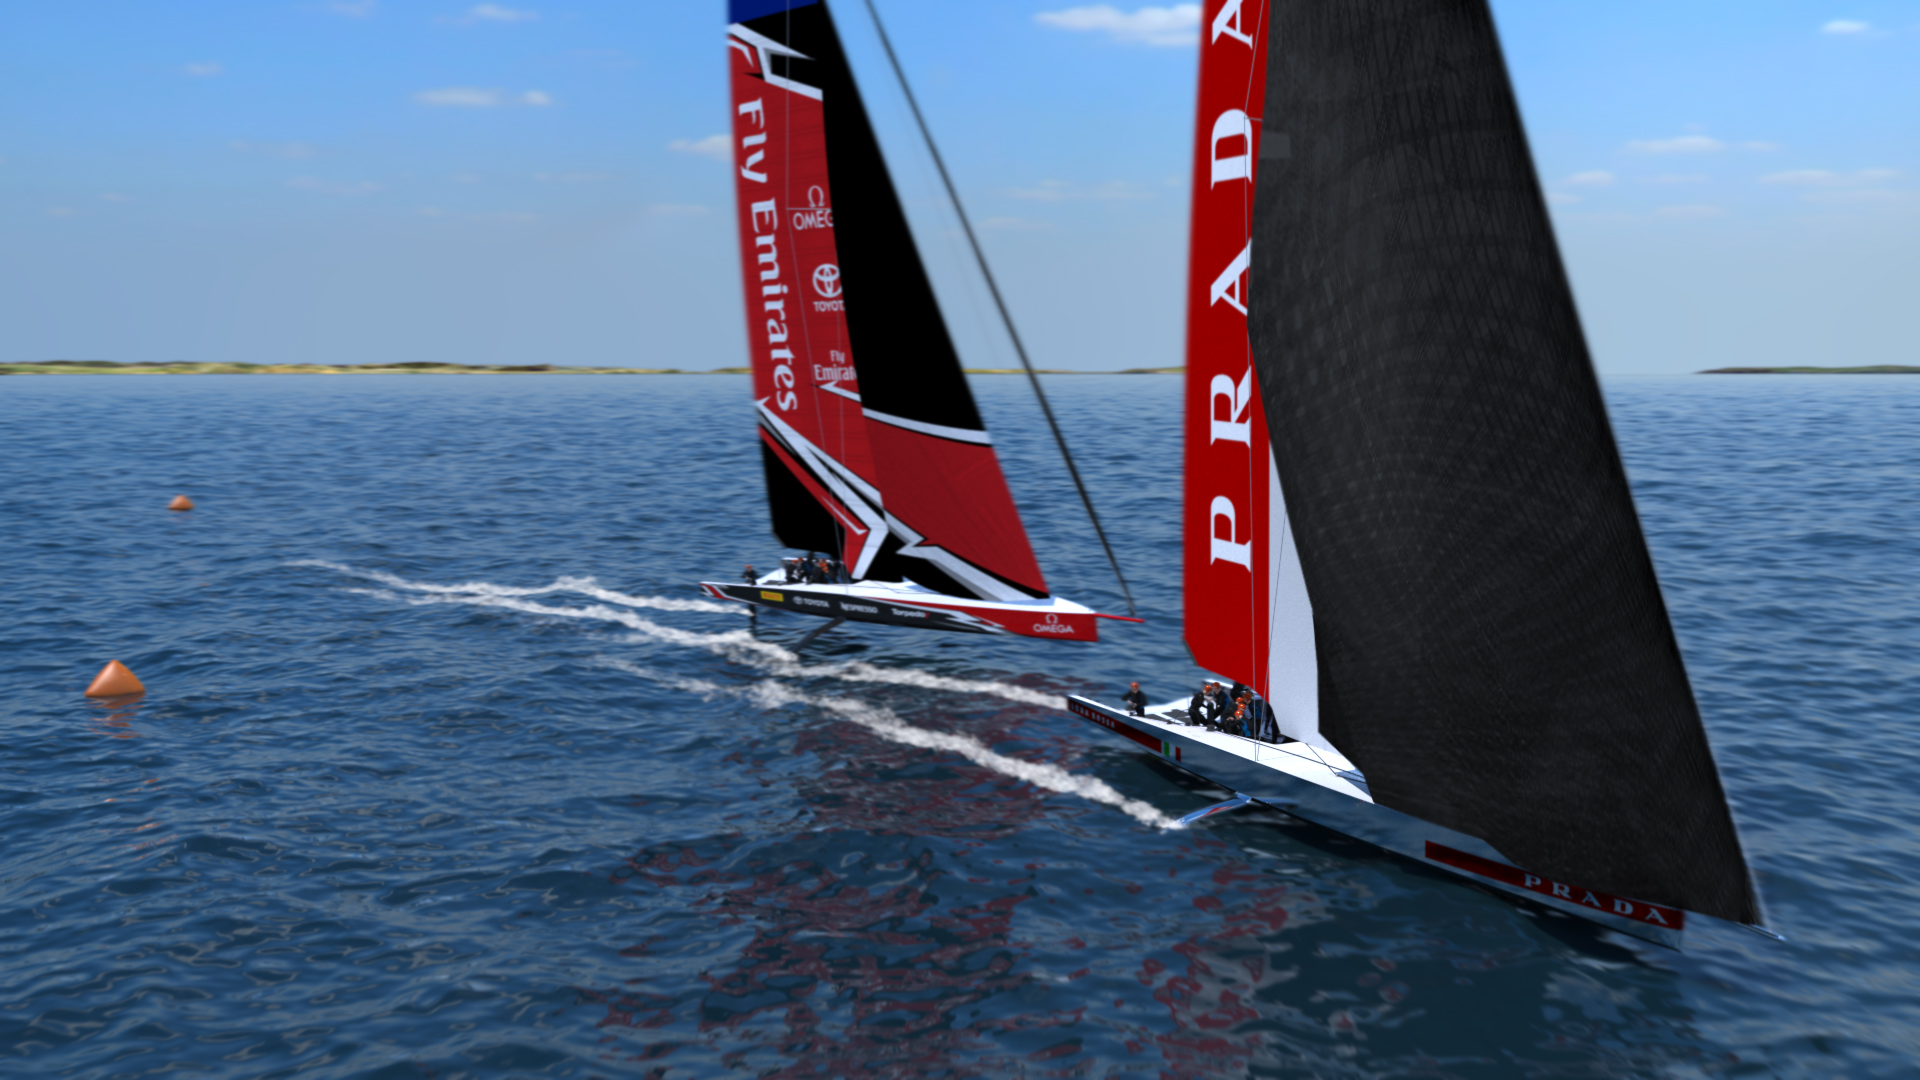 36th America's Cup 2021 in Auckland New Zealand